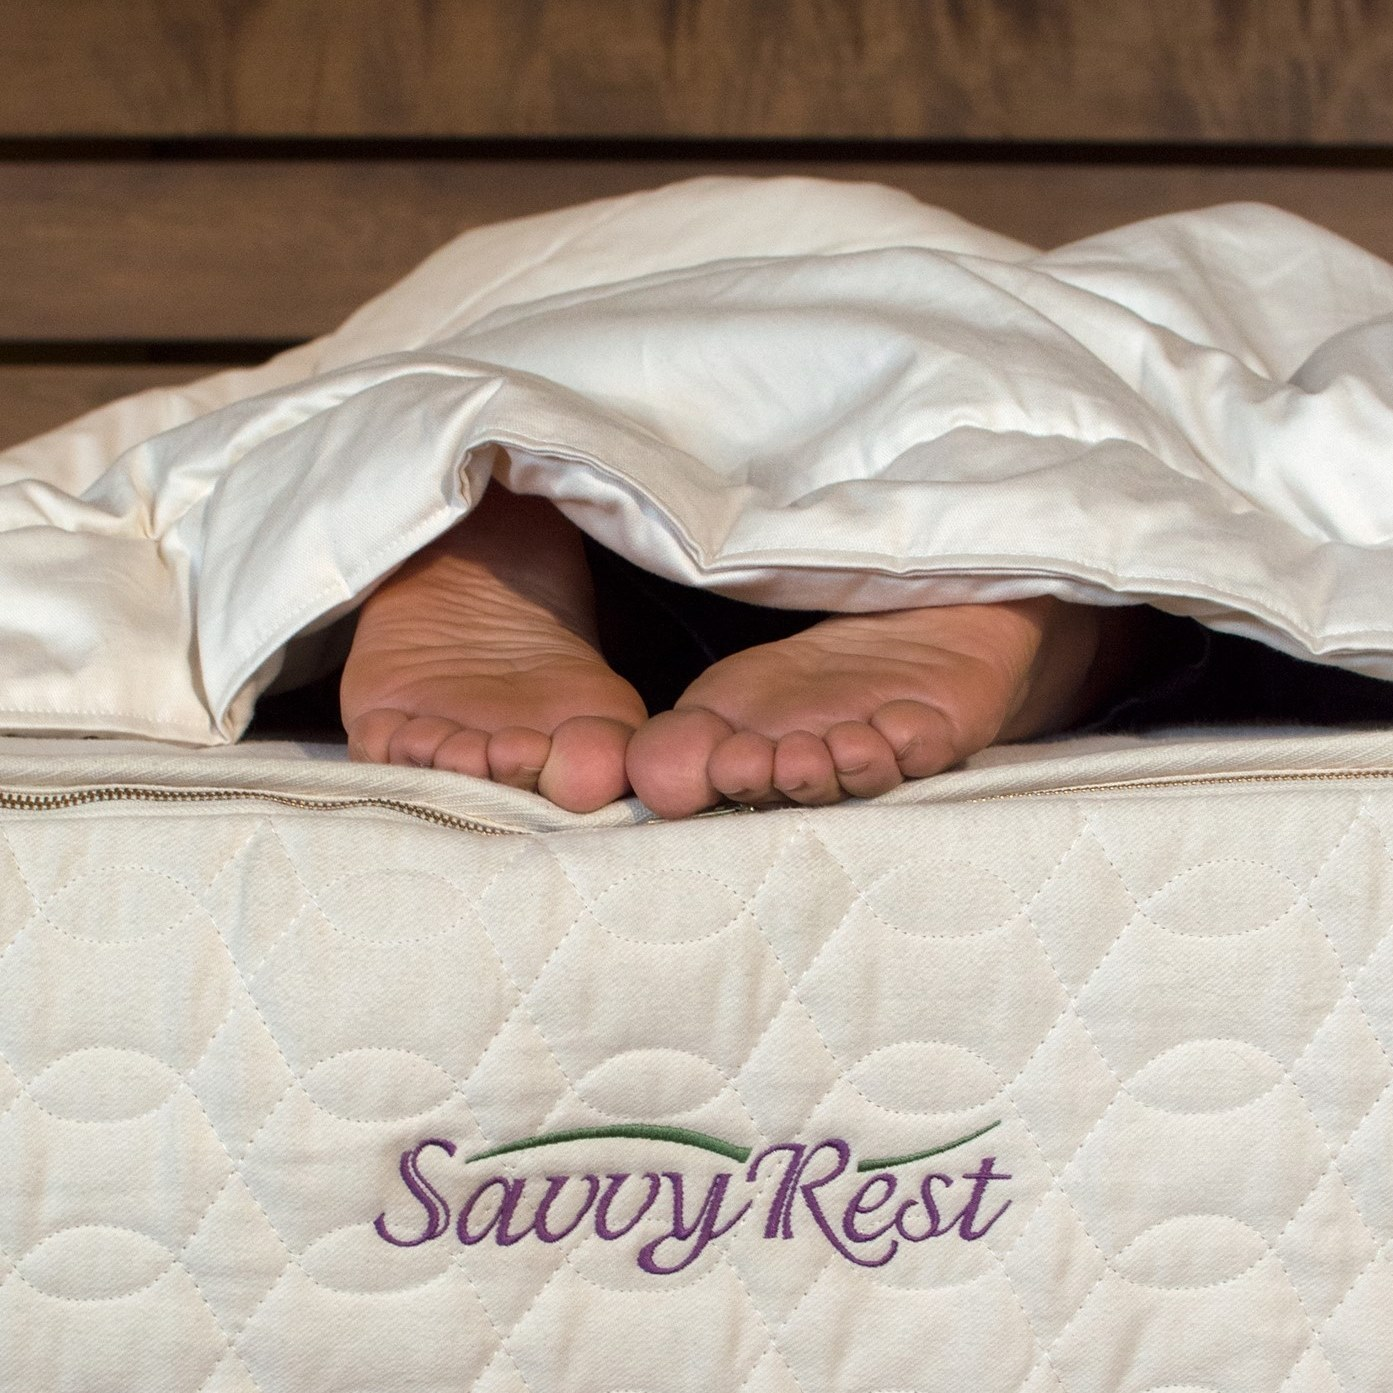 Savvy Rest Natural Bedroom – Natural Vita Talalay Latex Mattress Store In Rockville Md